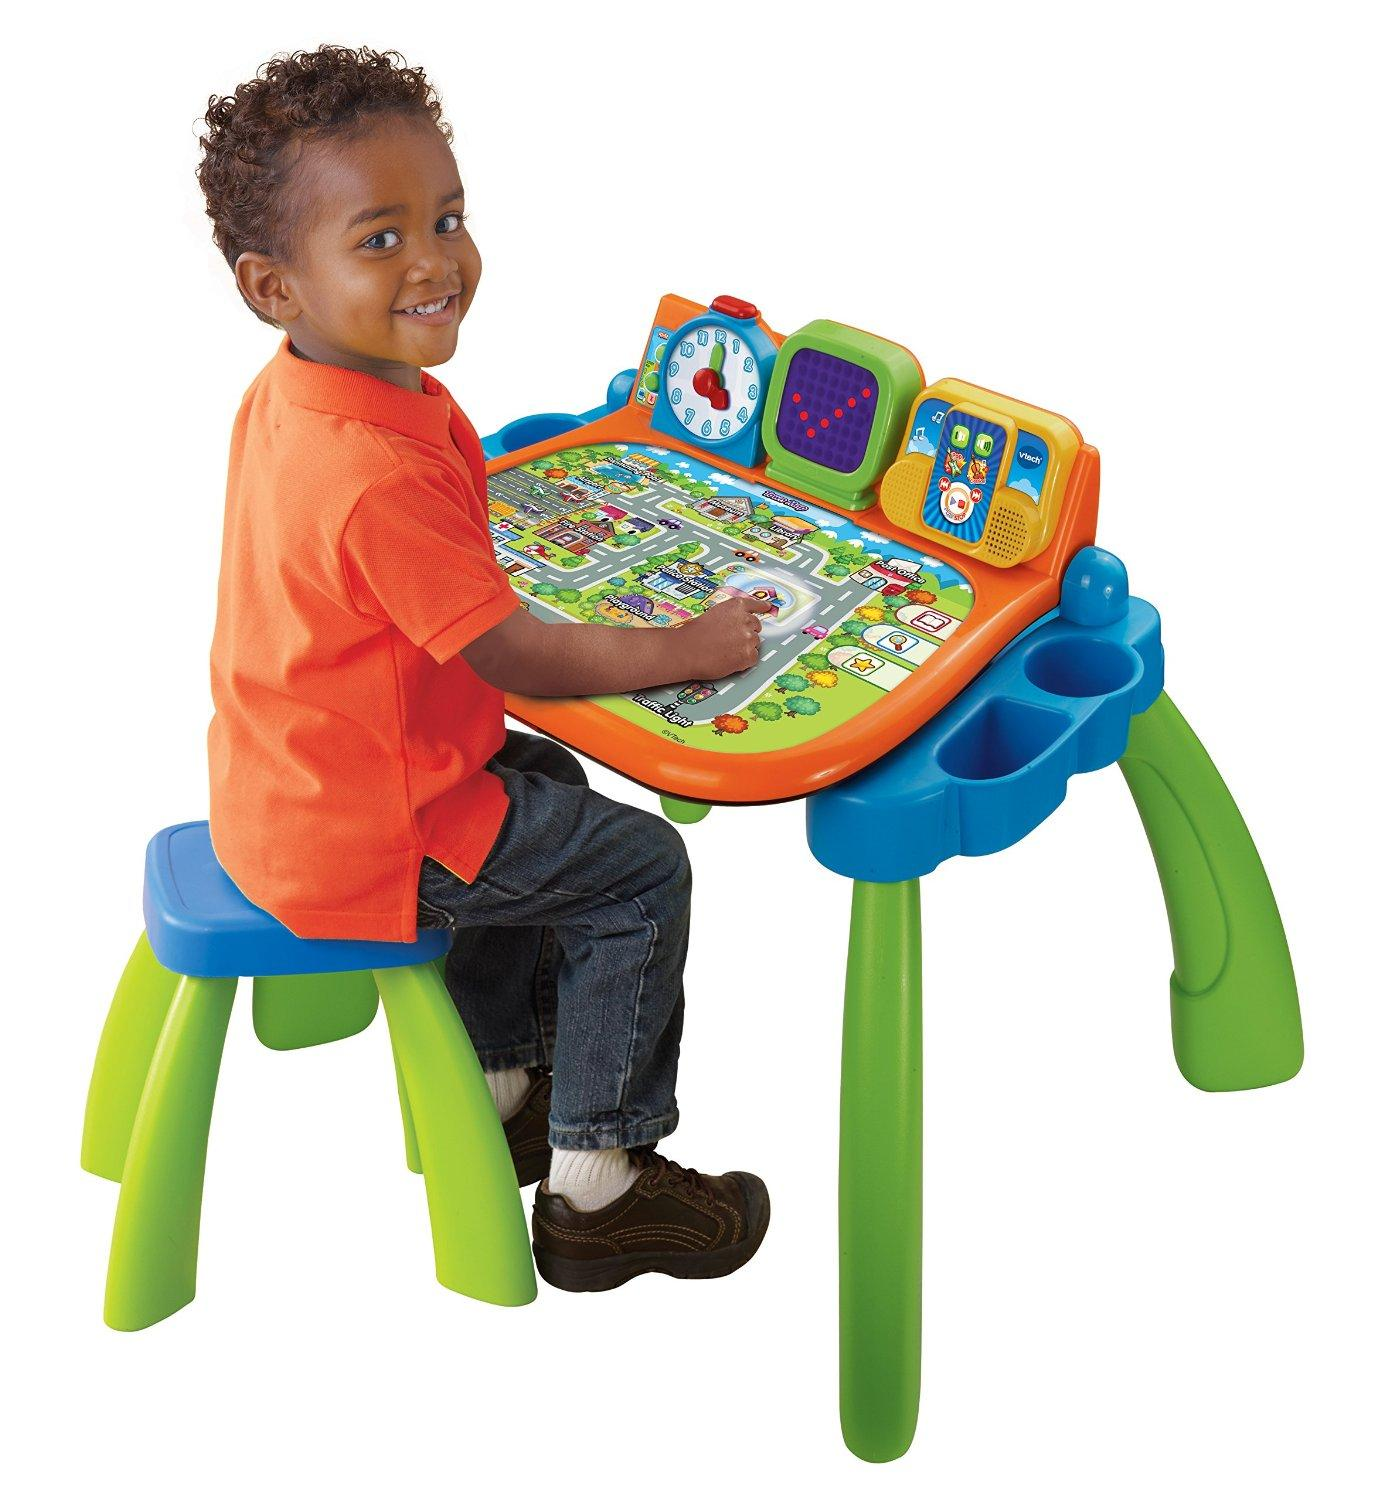 $39.96 VTech Touch and Learn Activity Desk